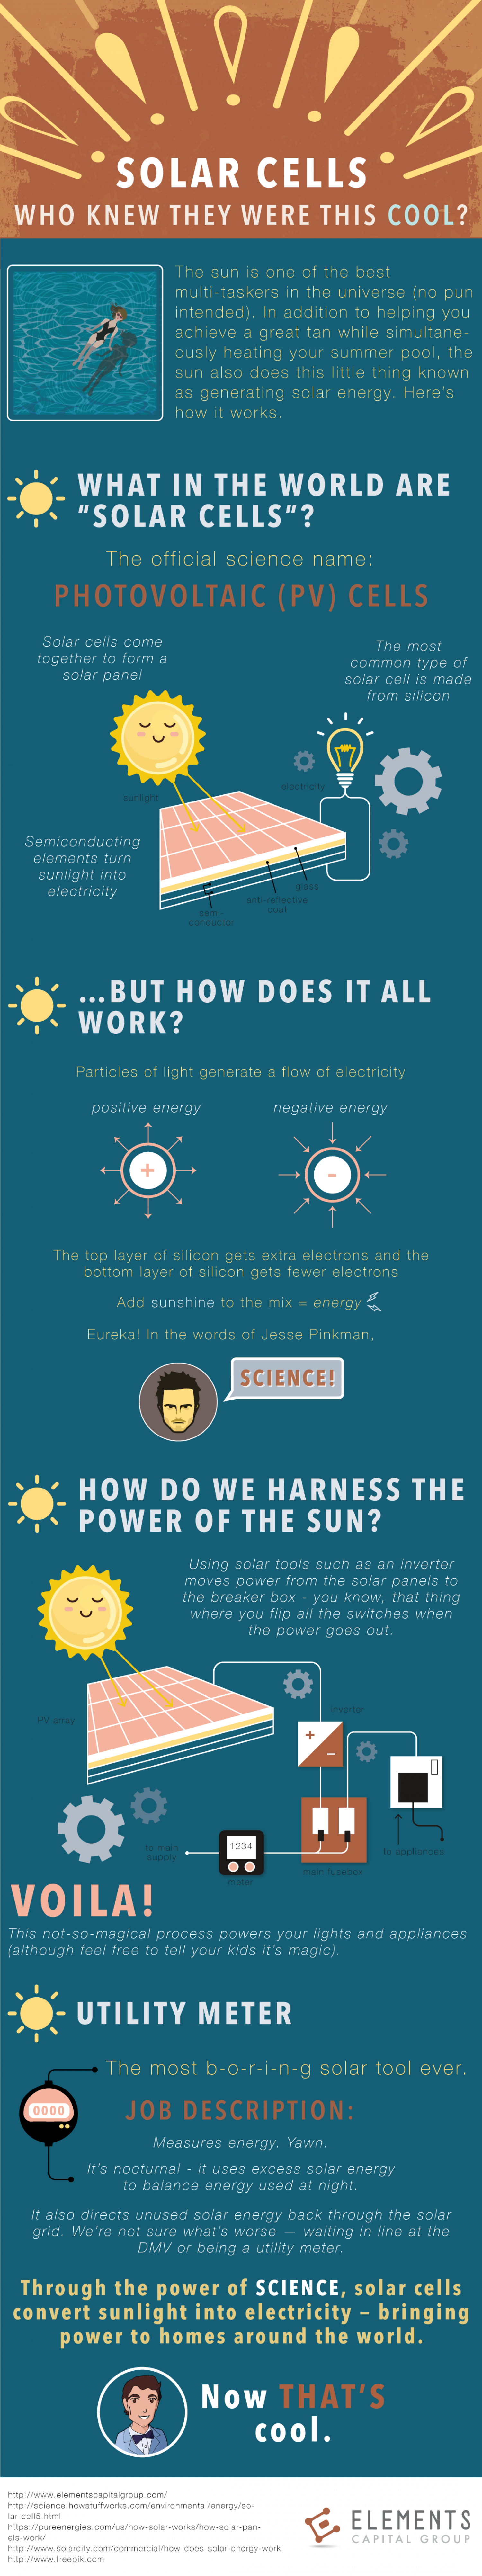 Solar Cells: How Do They Work? Infographic